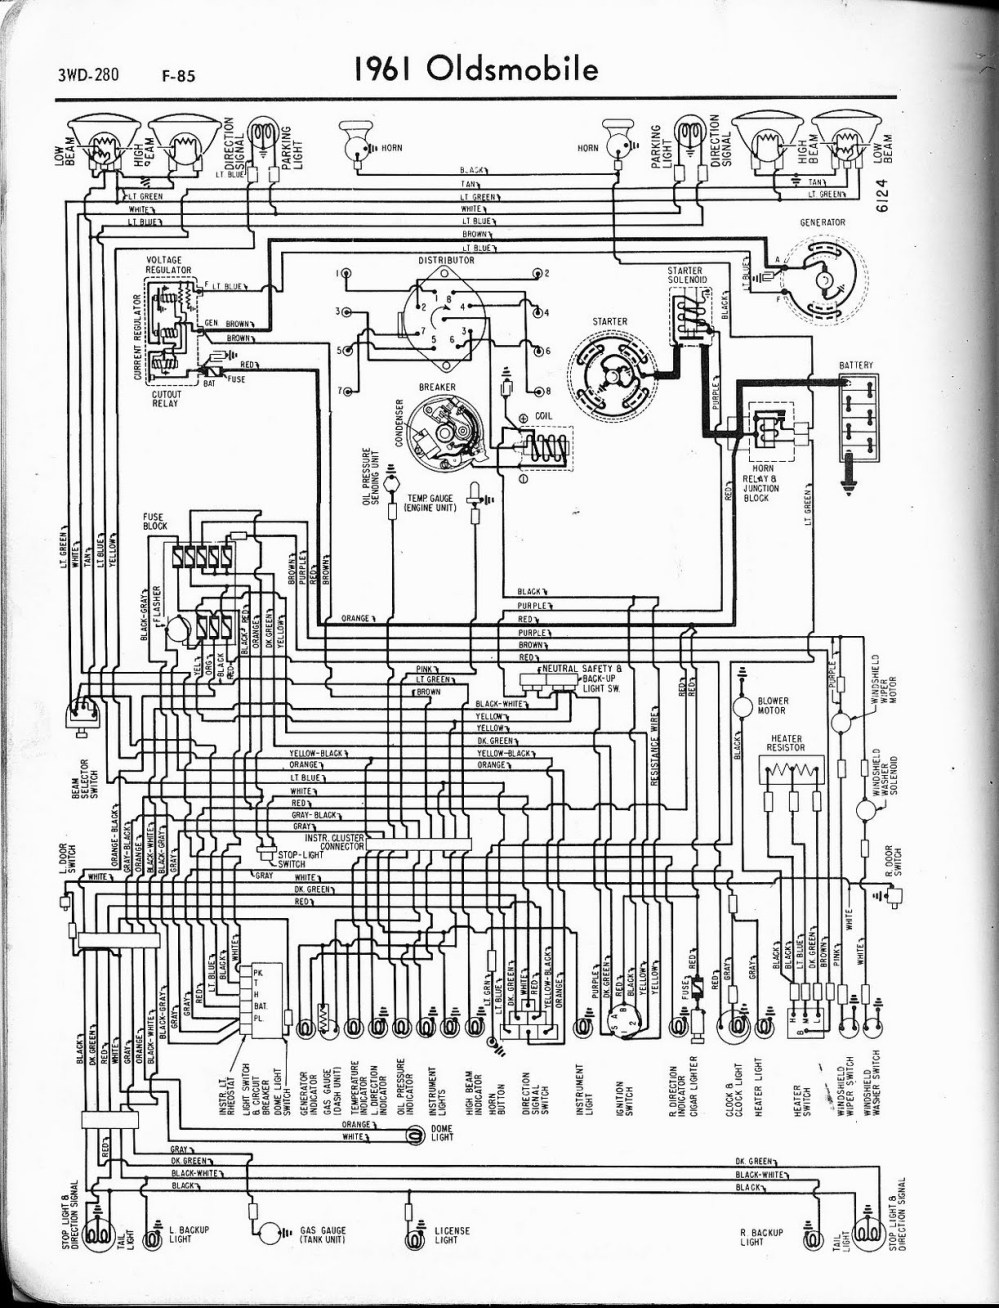 medium resolution of bzerob com technical articles library wiring section 57 chevy tail light wire diagram 40 chevy 55